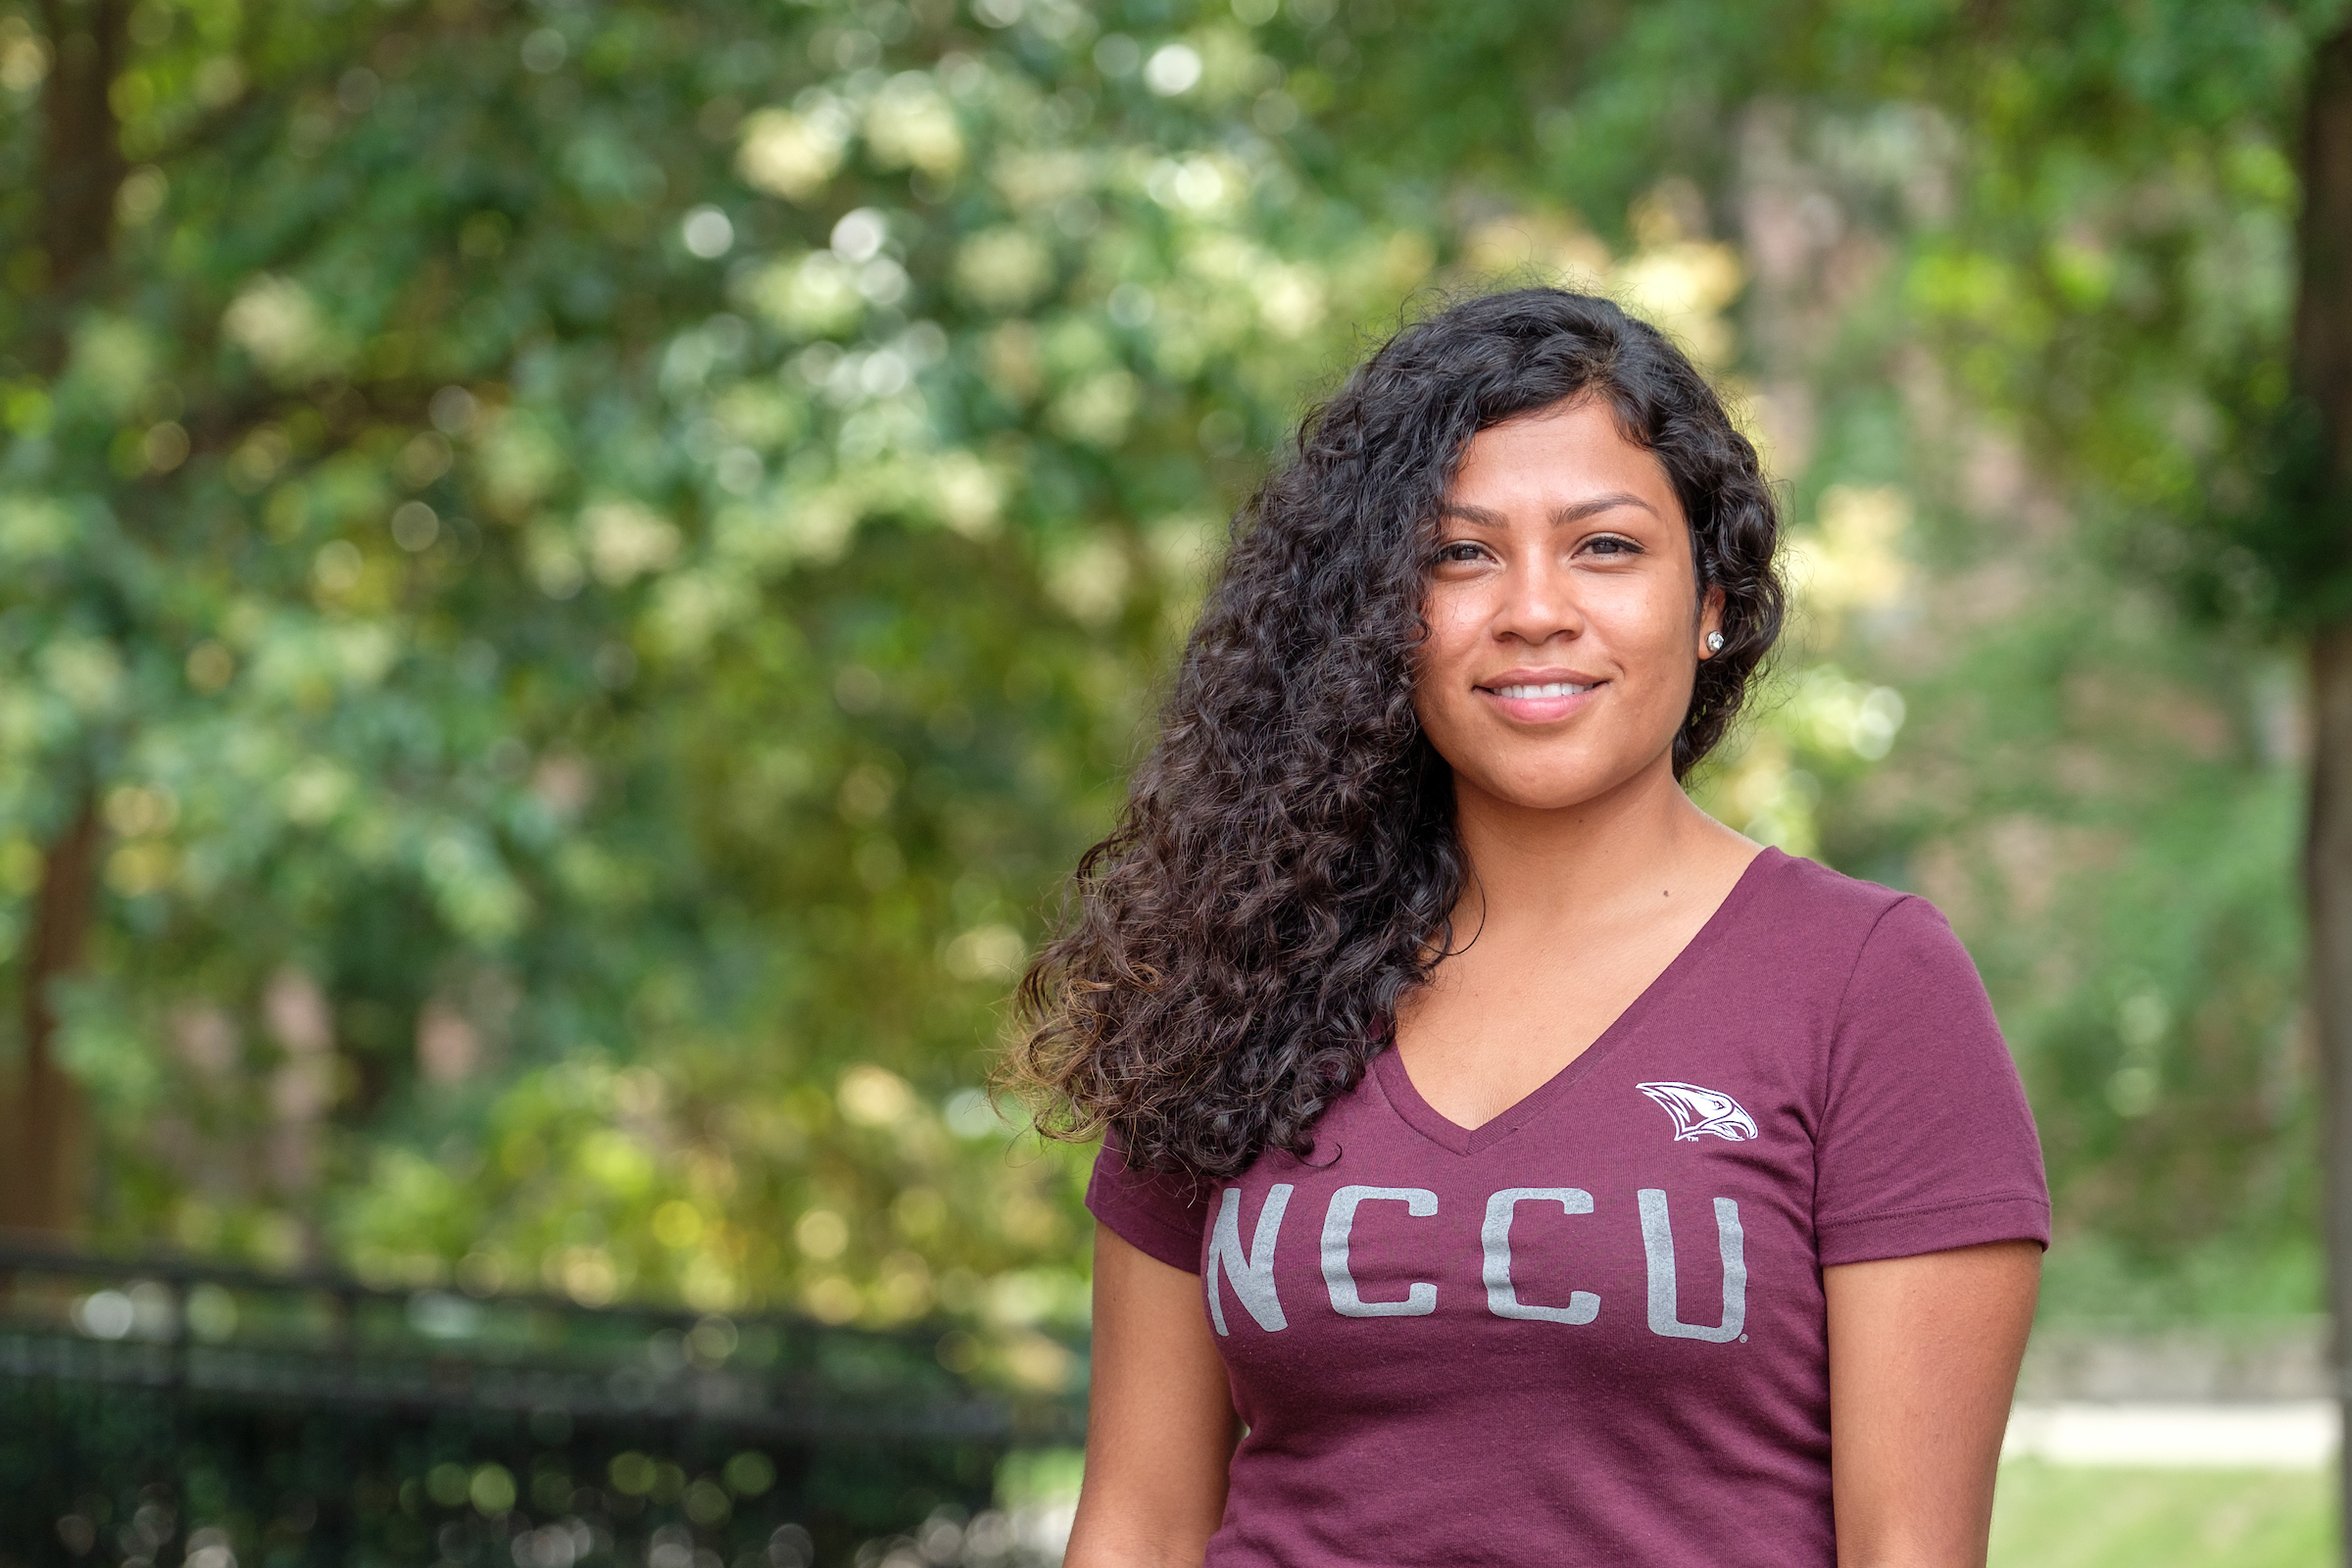 NCCU Summer Semester Offers Numerous Benefits